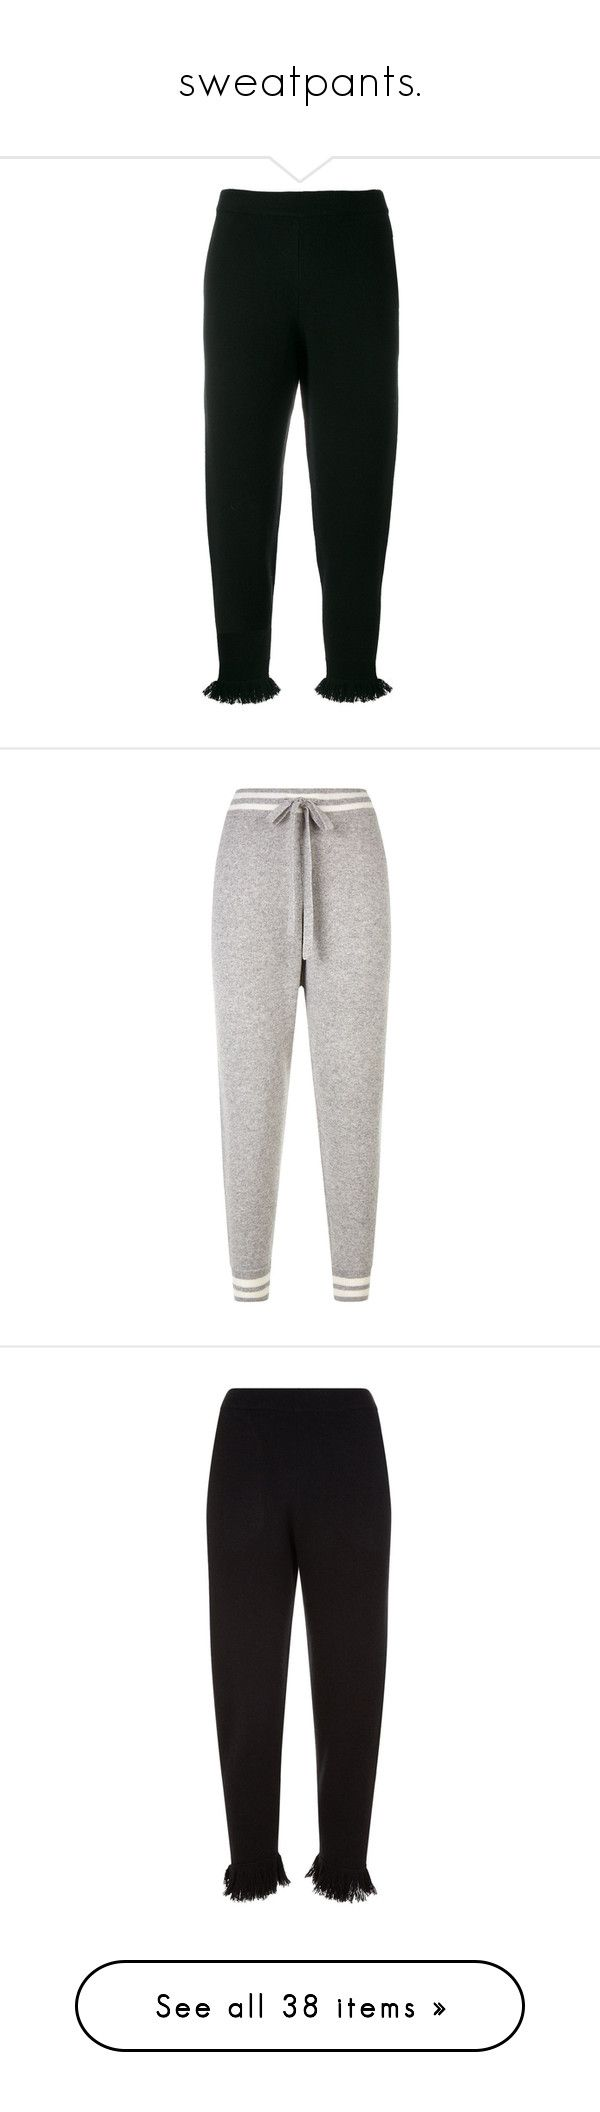 """""""sweatpants."""" by takenforfashion ❤ liked on Polyvore featuring pants, black, peplum pants, striped pants, white striped pants, white pants, white stripe pants, white trousers, activewear and activewear pants"""